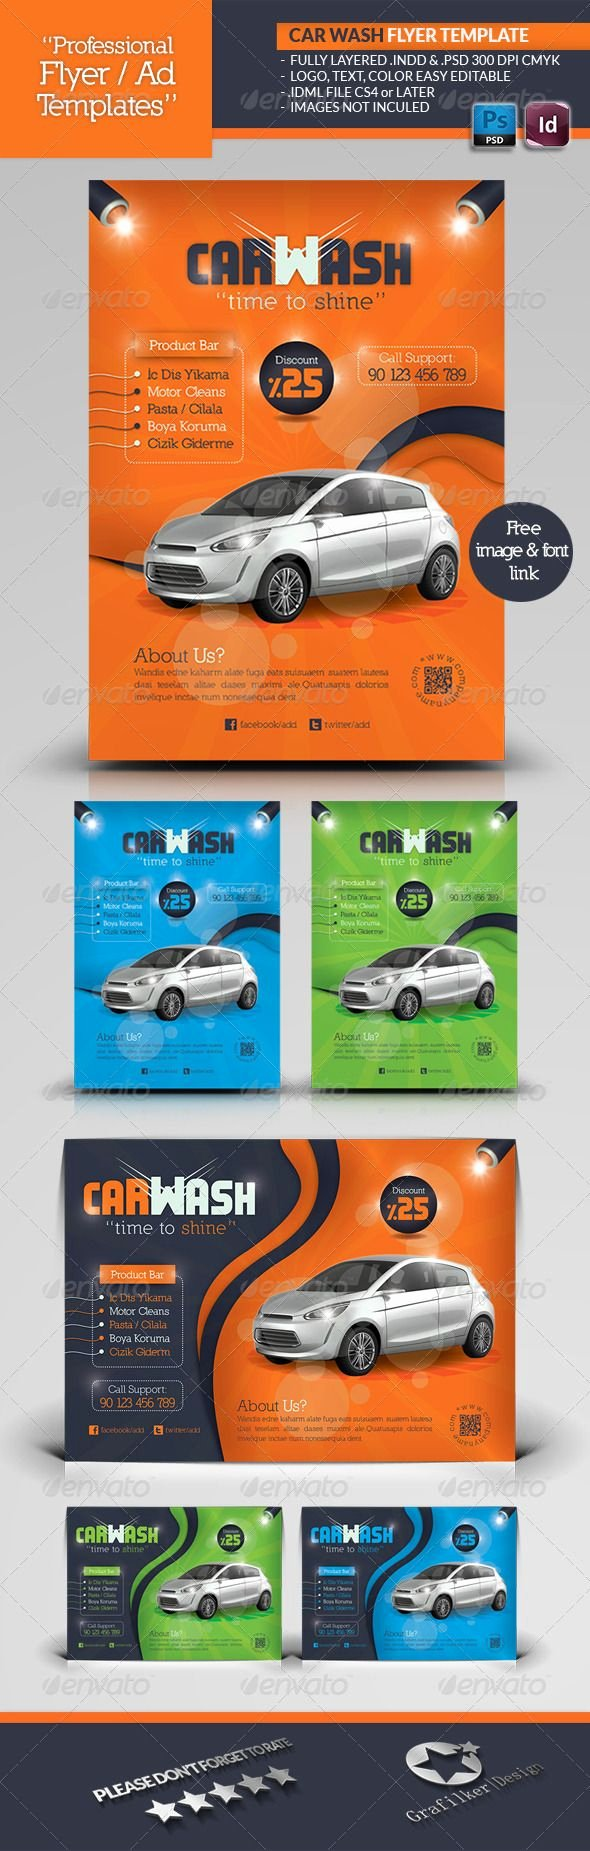 Car Wash Flyer Template Inspirational Car Wash Flyer Template